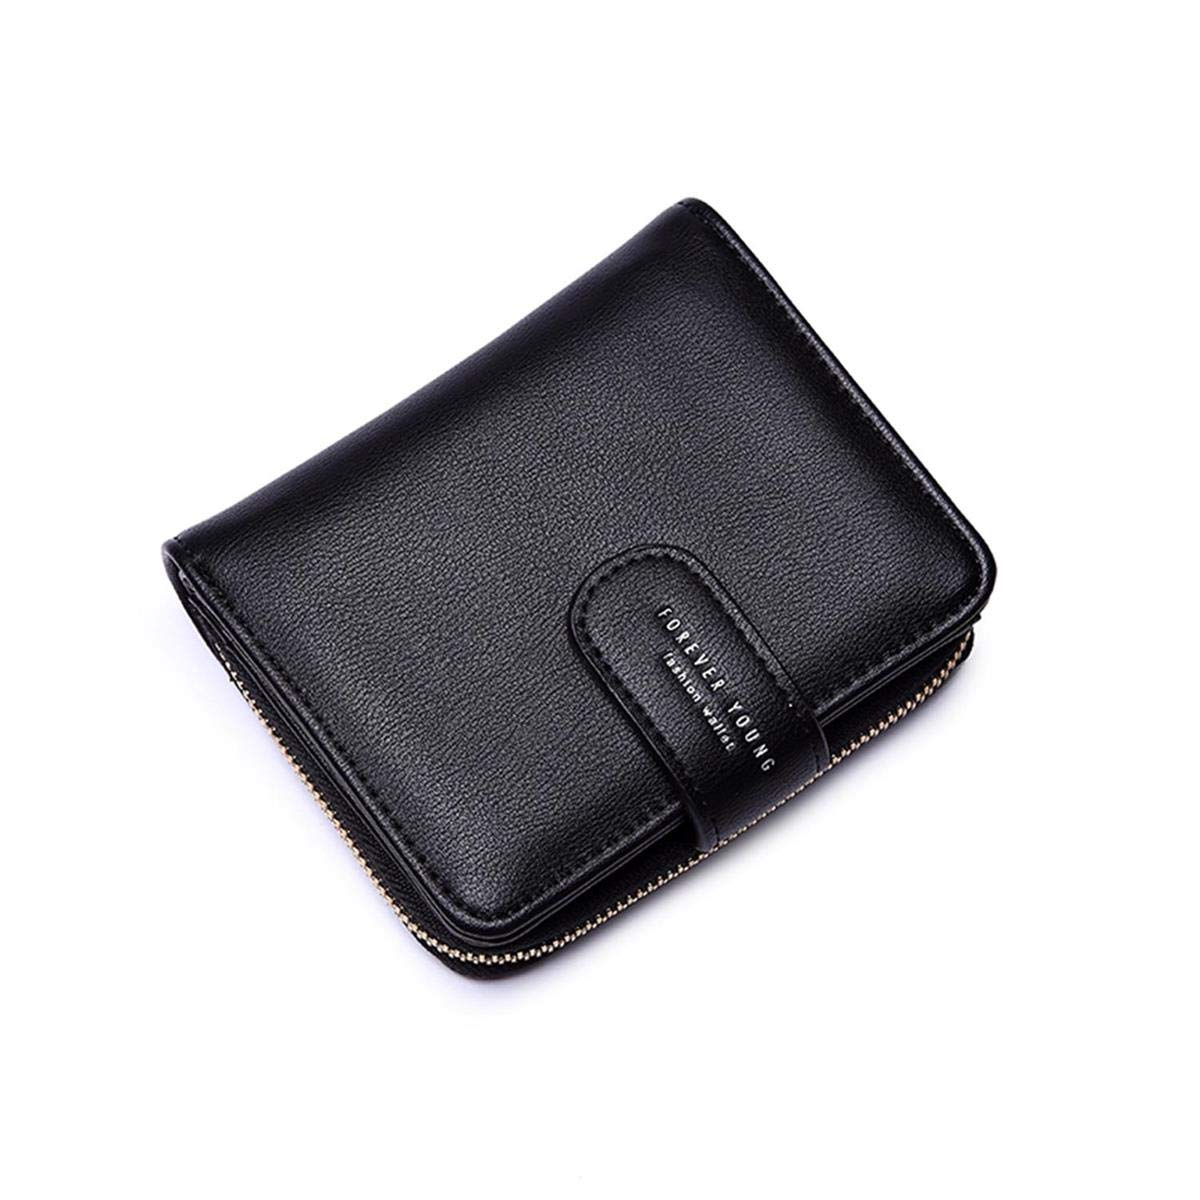 Wallets for Women, Women Small Wallet Lady Short Wallet Bifold Leather Multi-purpose Wallet with ID Window (A-Black)